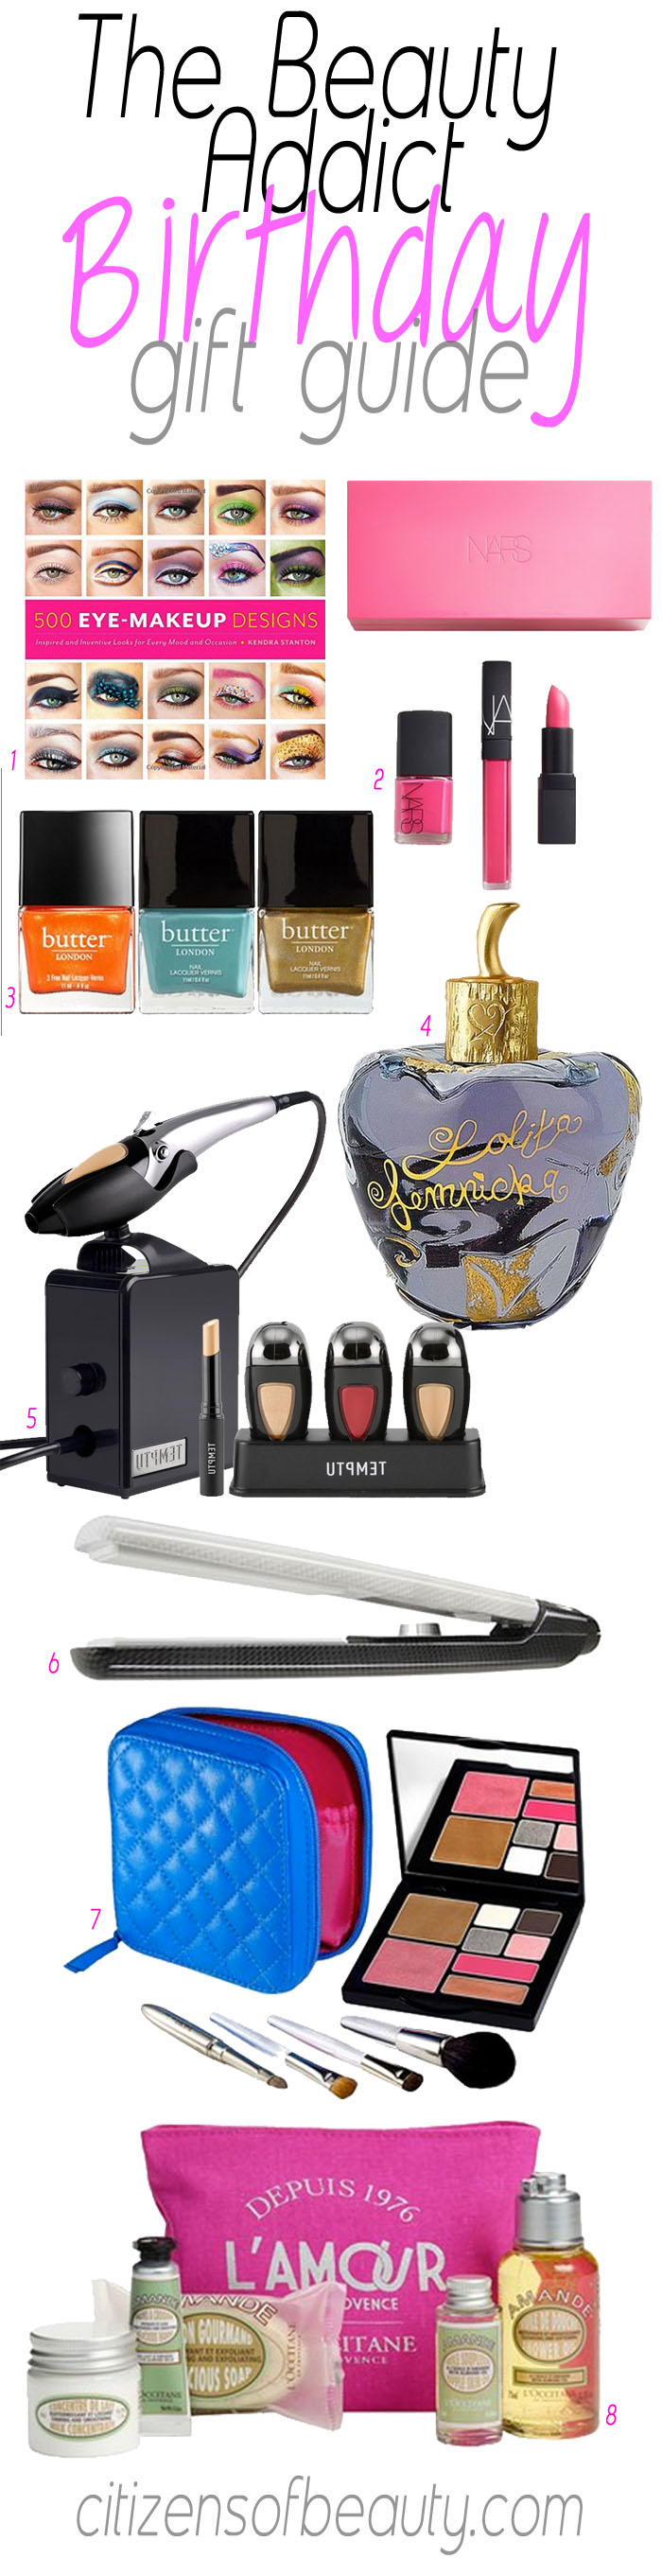 The Beauty Addict Birthday Gift Guide for Her